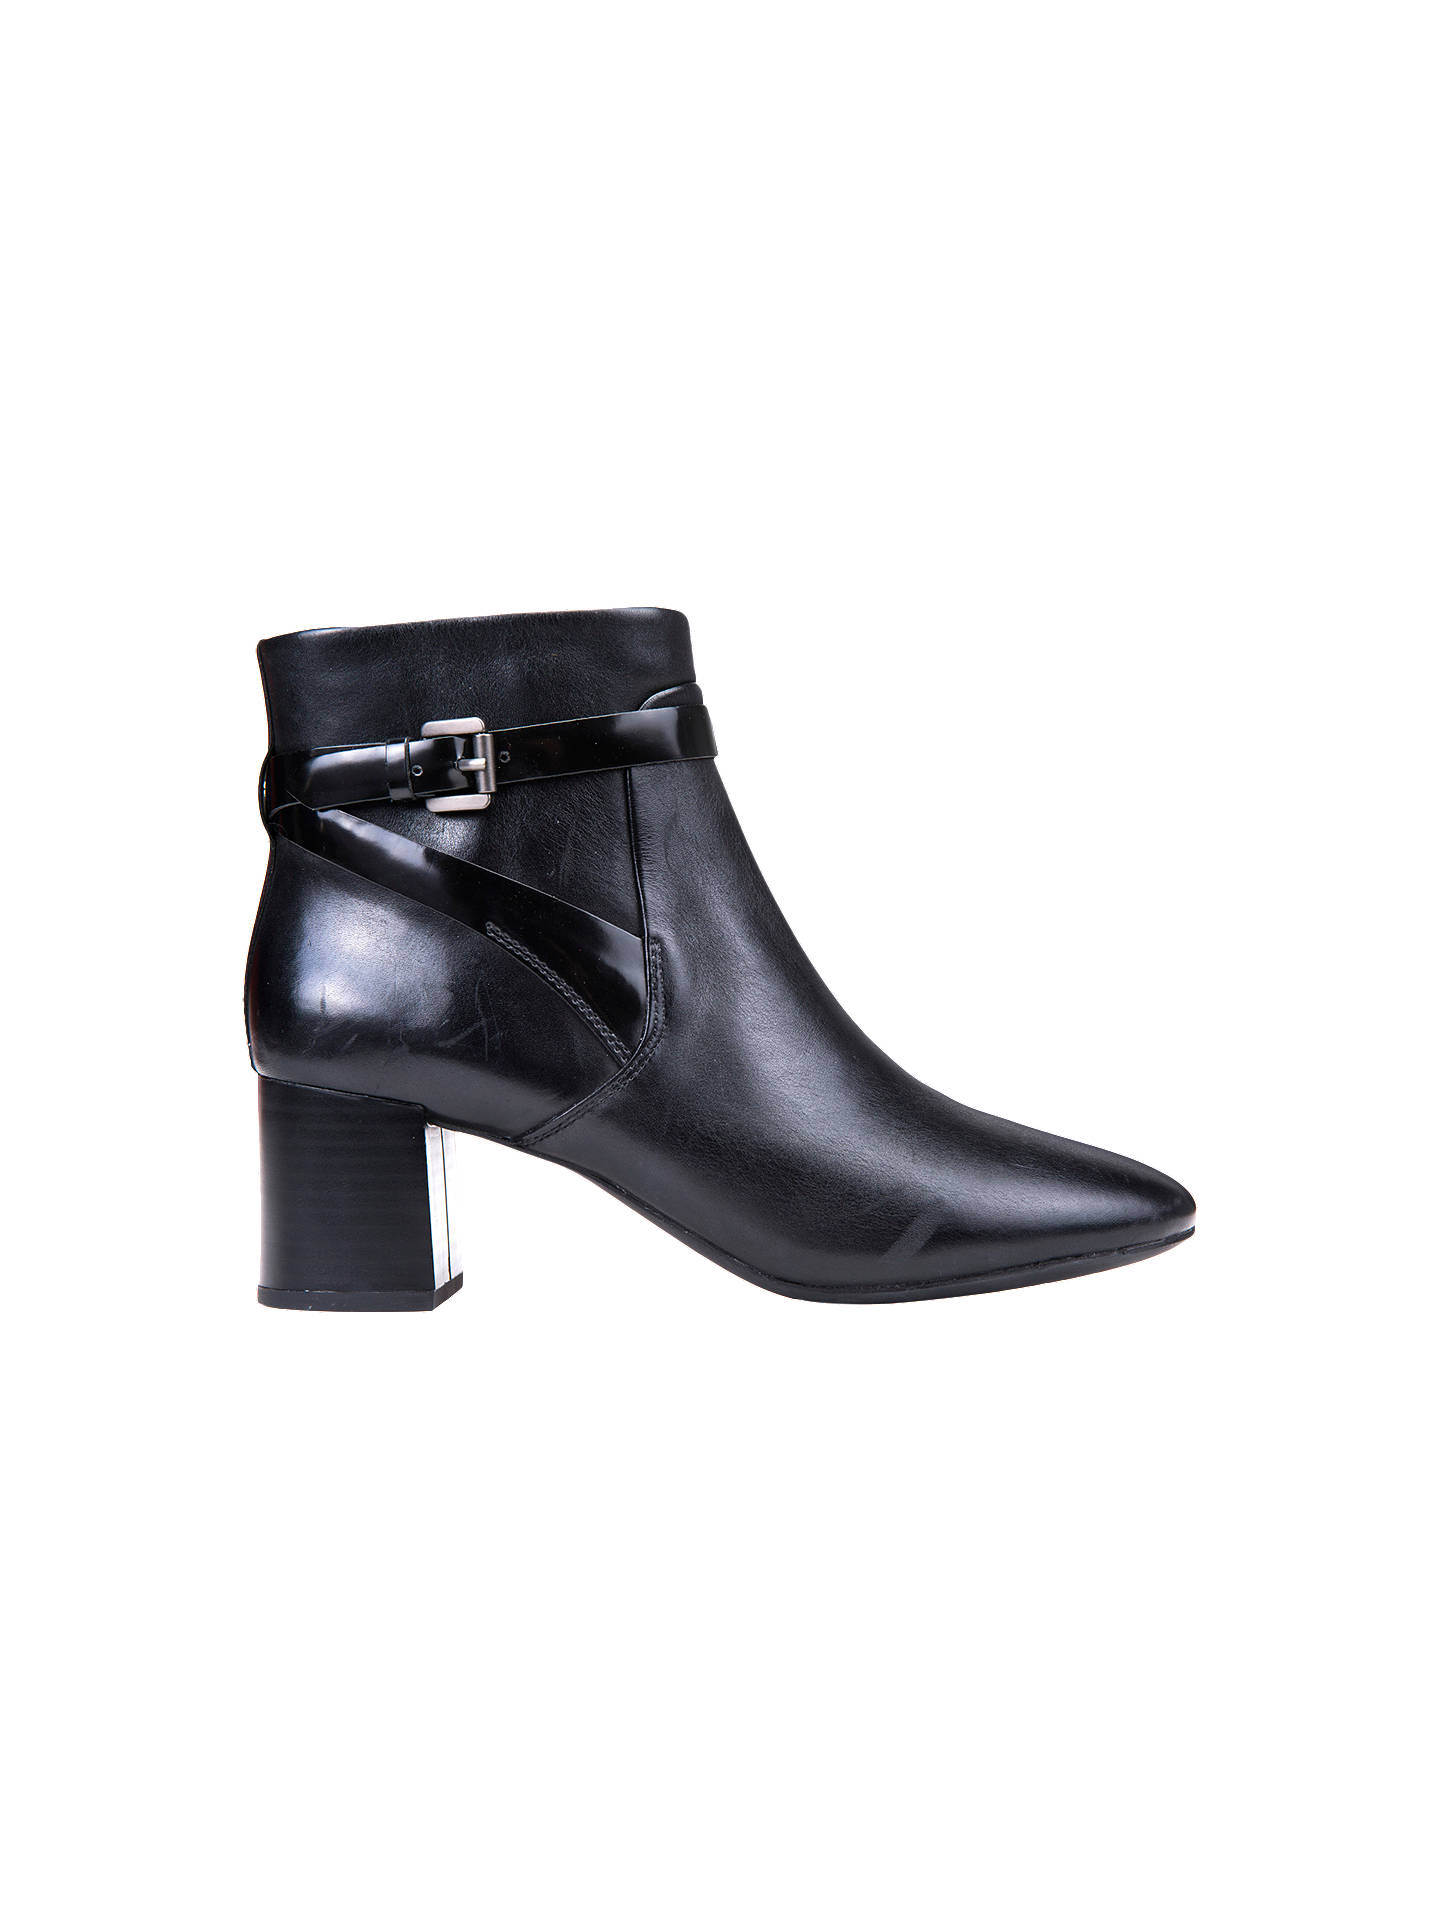 Geox Audalies Block Heeled Ankle Boots Black 3 Online At Johnlewis